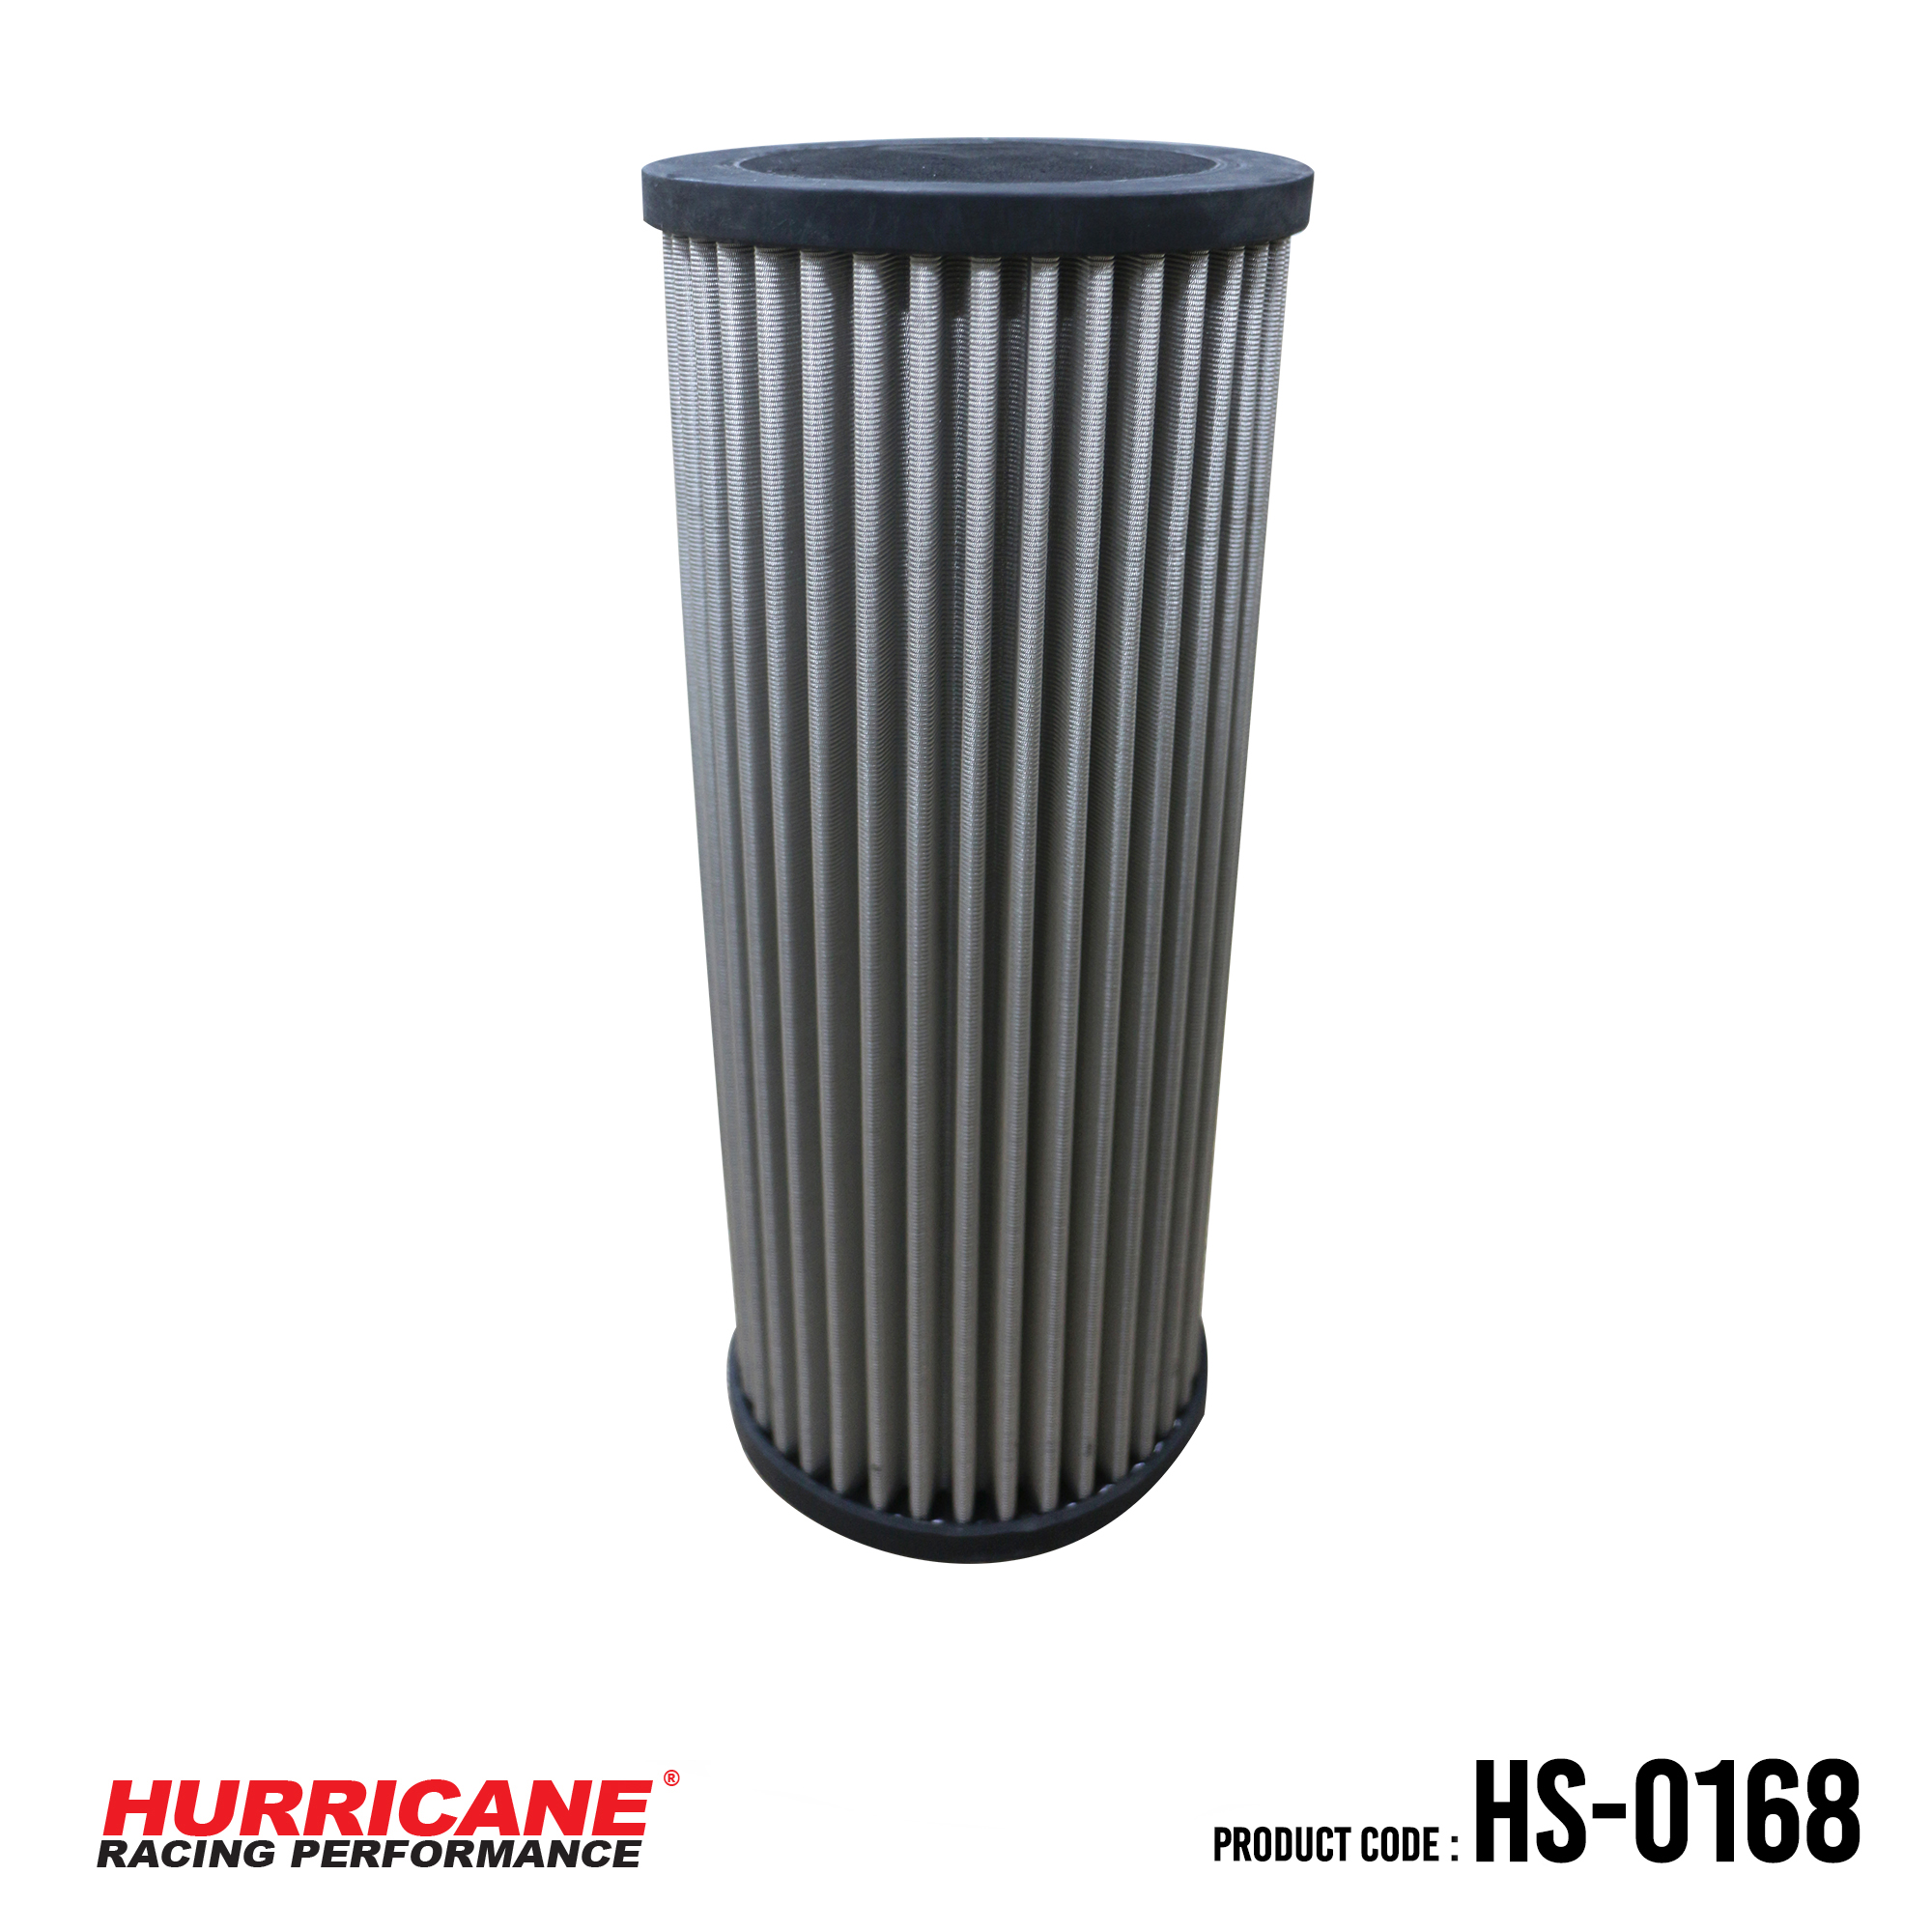 HURRICANE STAINLESS STEEL AIR FILTER FOR HS-0168 OpelSaabVauxhall